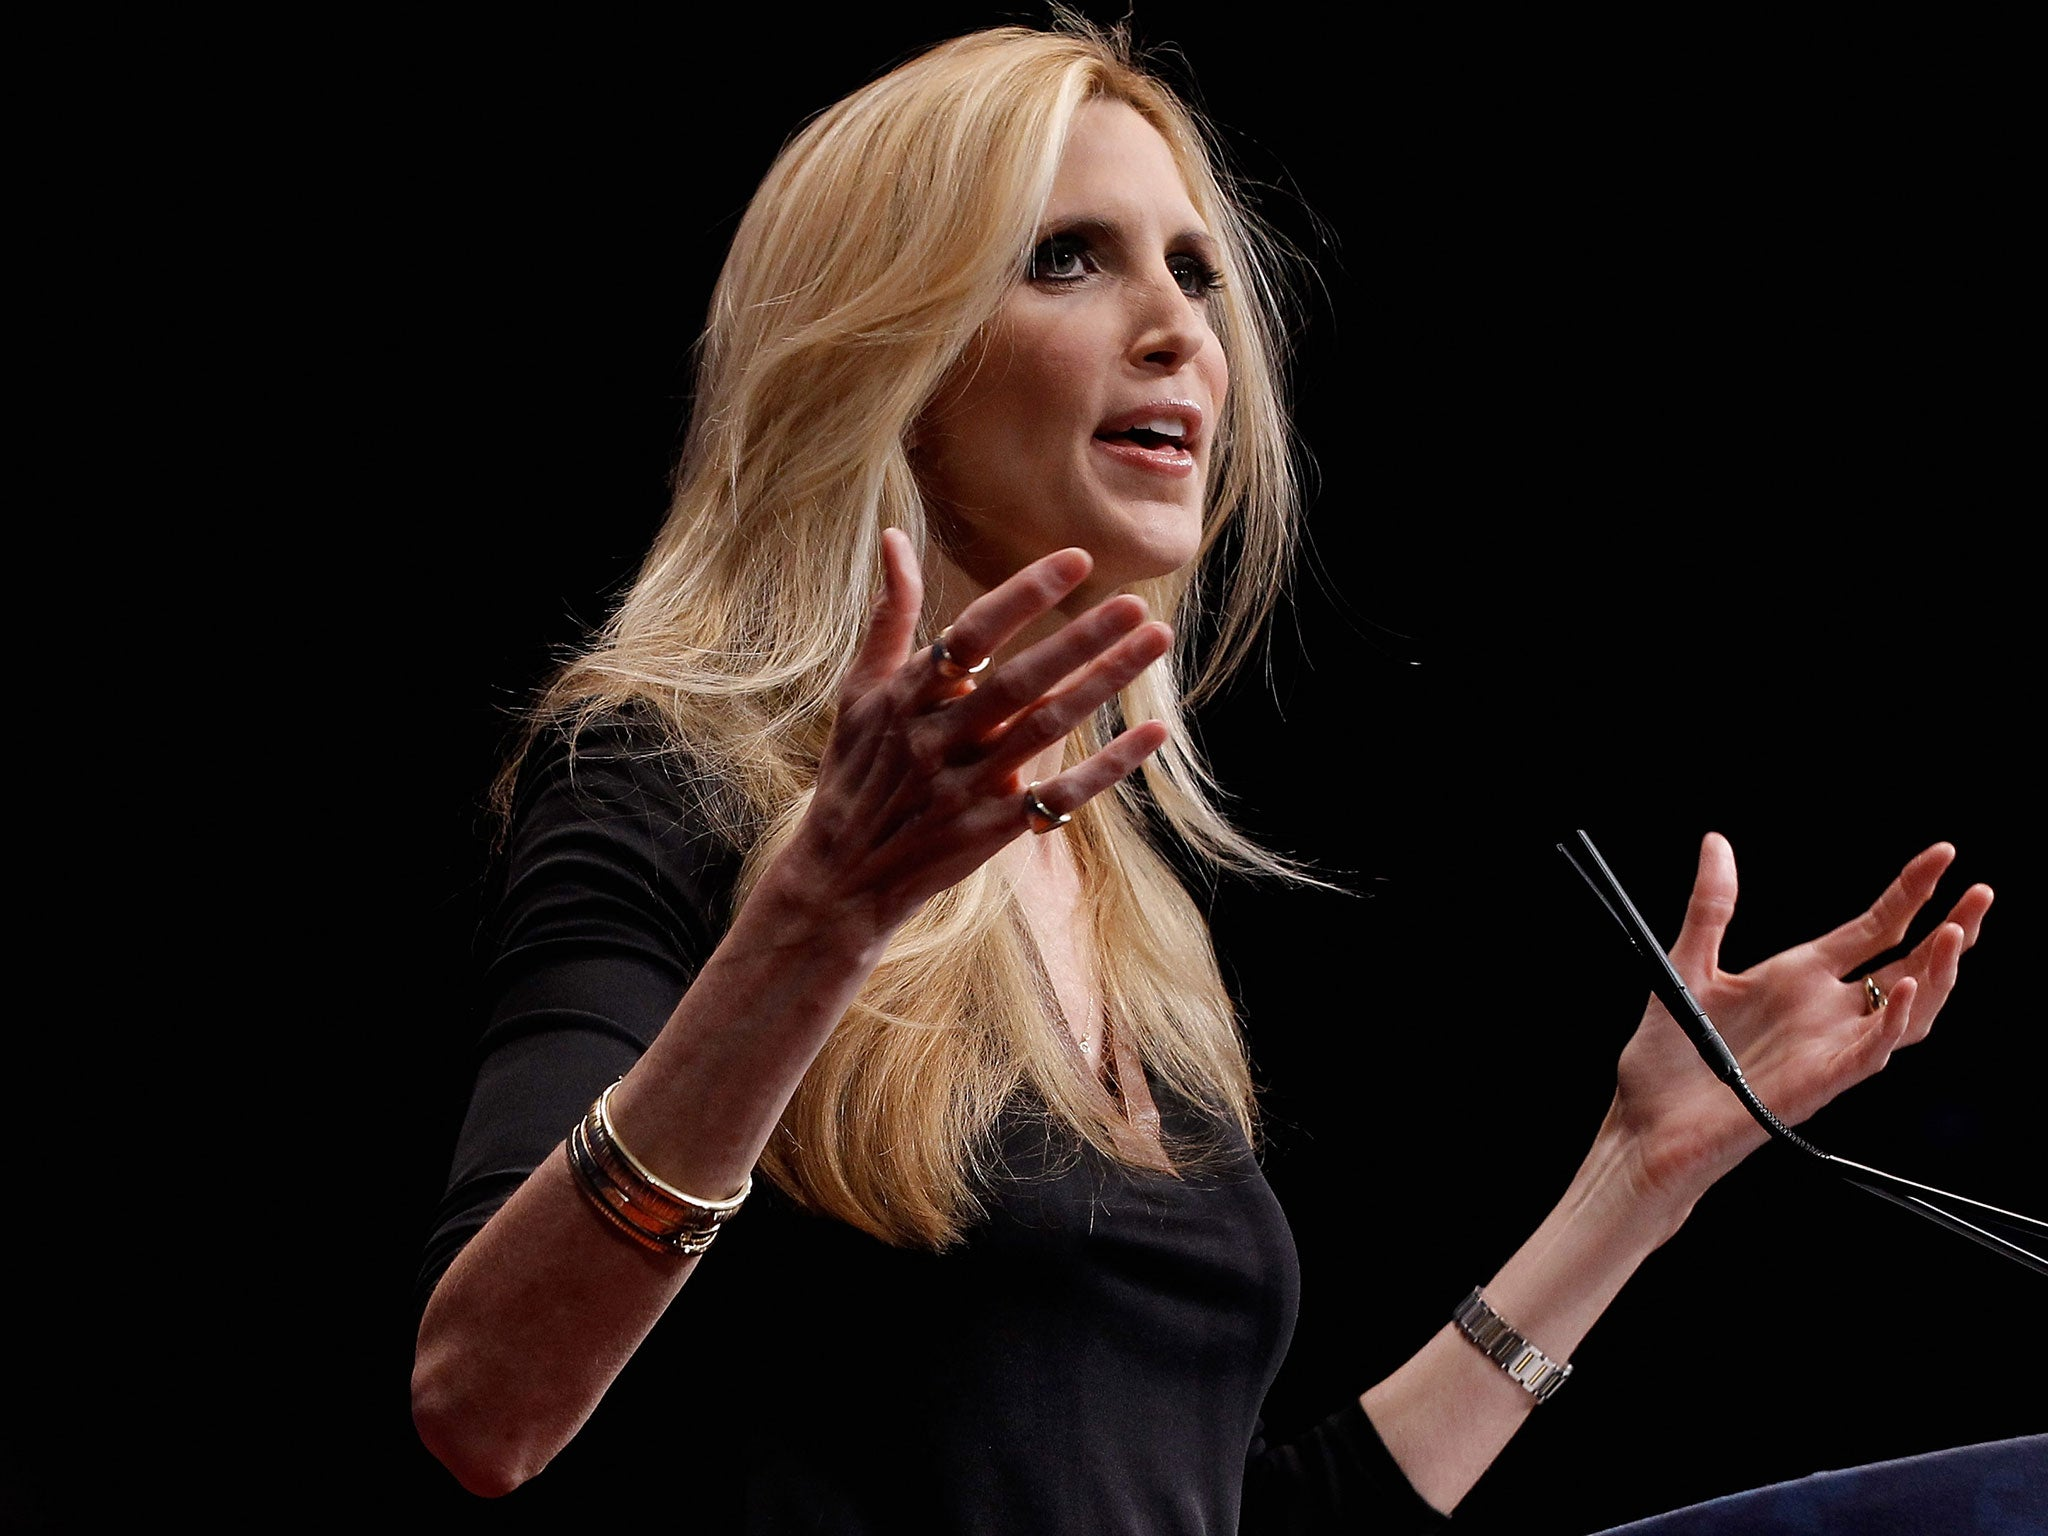 The Ann Coulter jokes at the Rob Lowe roast were brutal